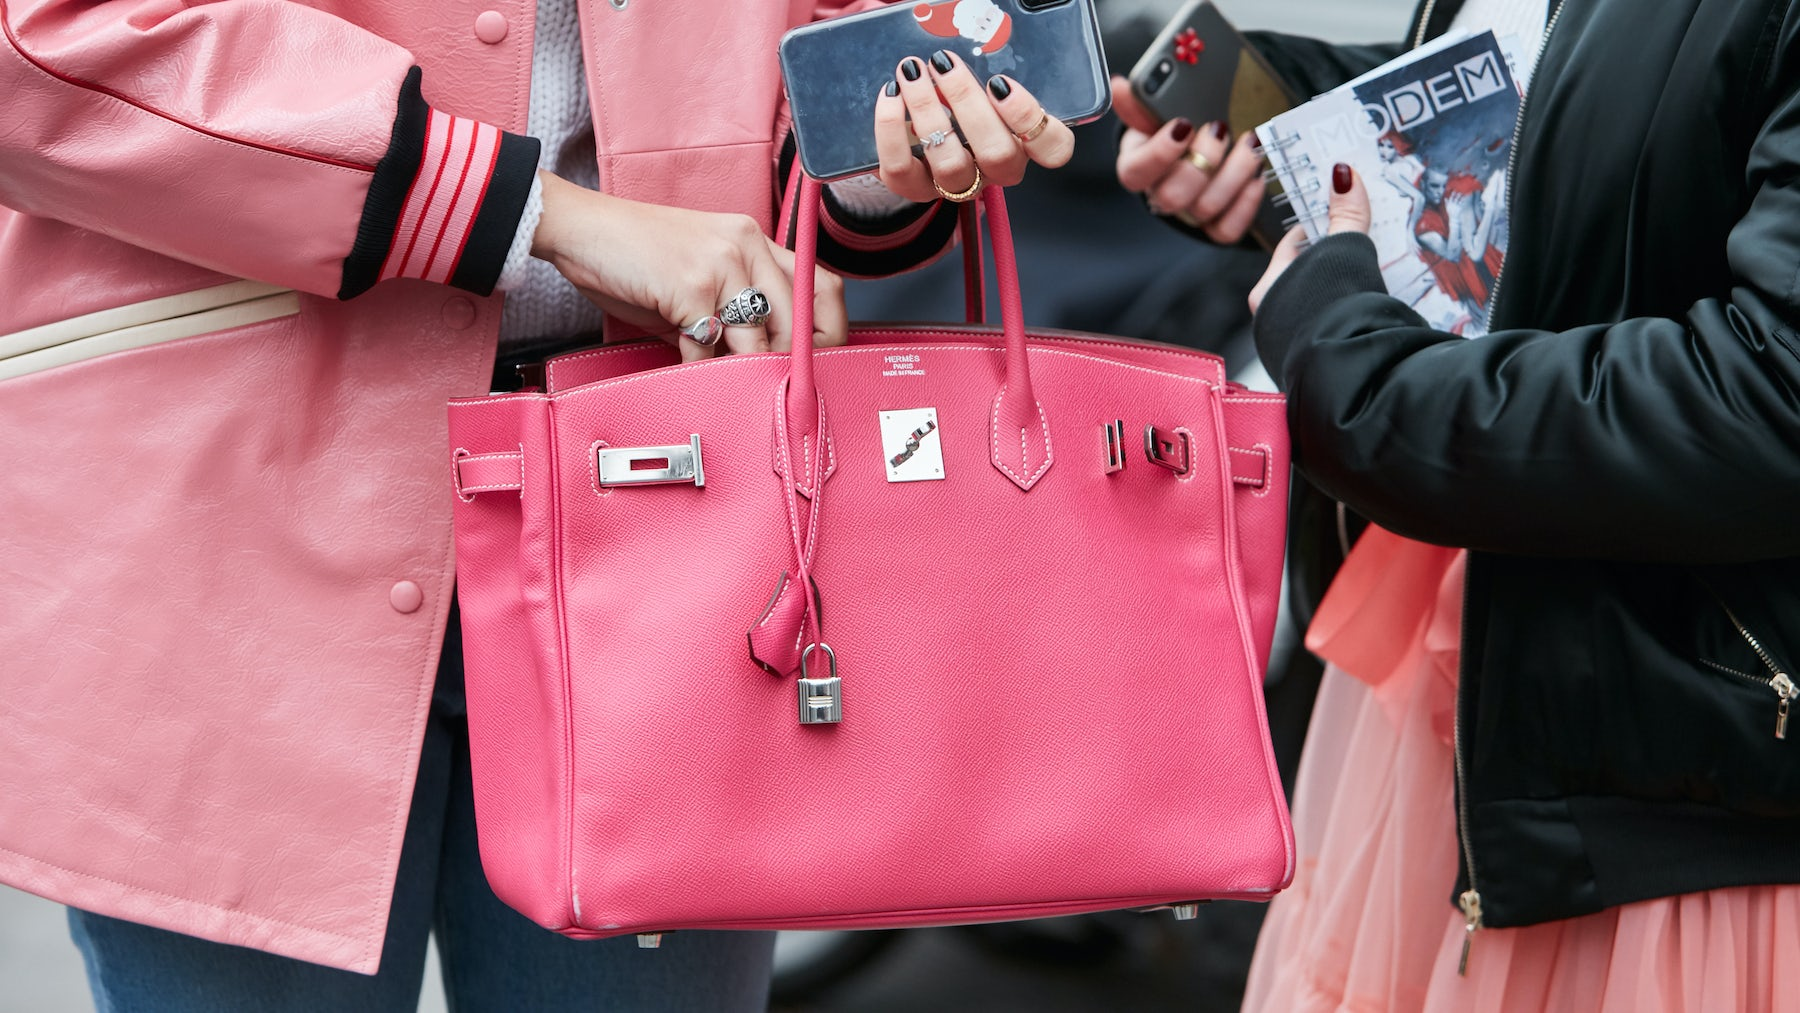 Hermès Birkin bag | Source: Shutterstock